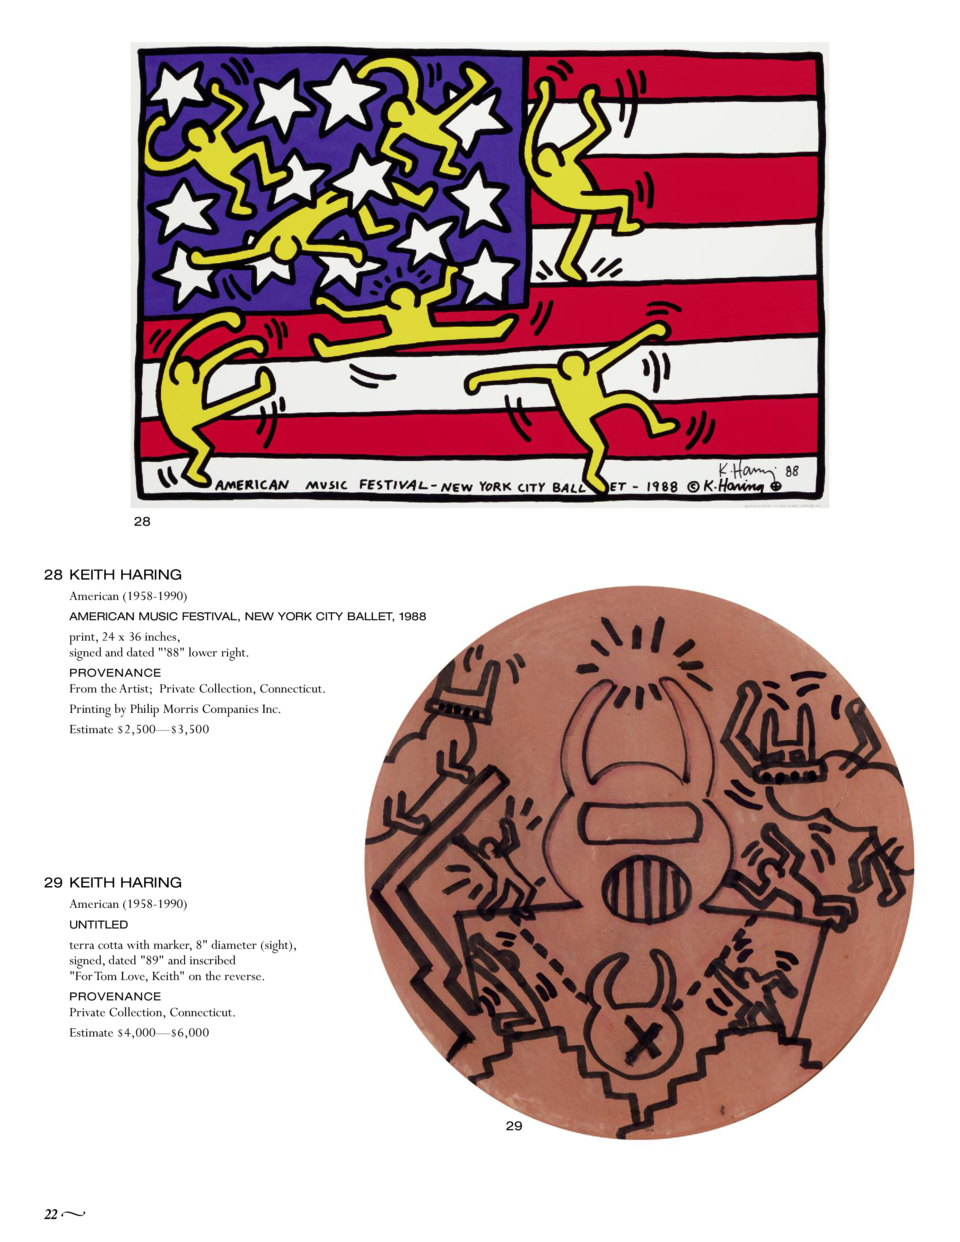 28  28 KEITH HARING American  1958-1990  AMERICAN MUSIC FESTIVAL, NEW YORK CITY BALLET, 1988  print, 24 x 36 inches, signe...